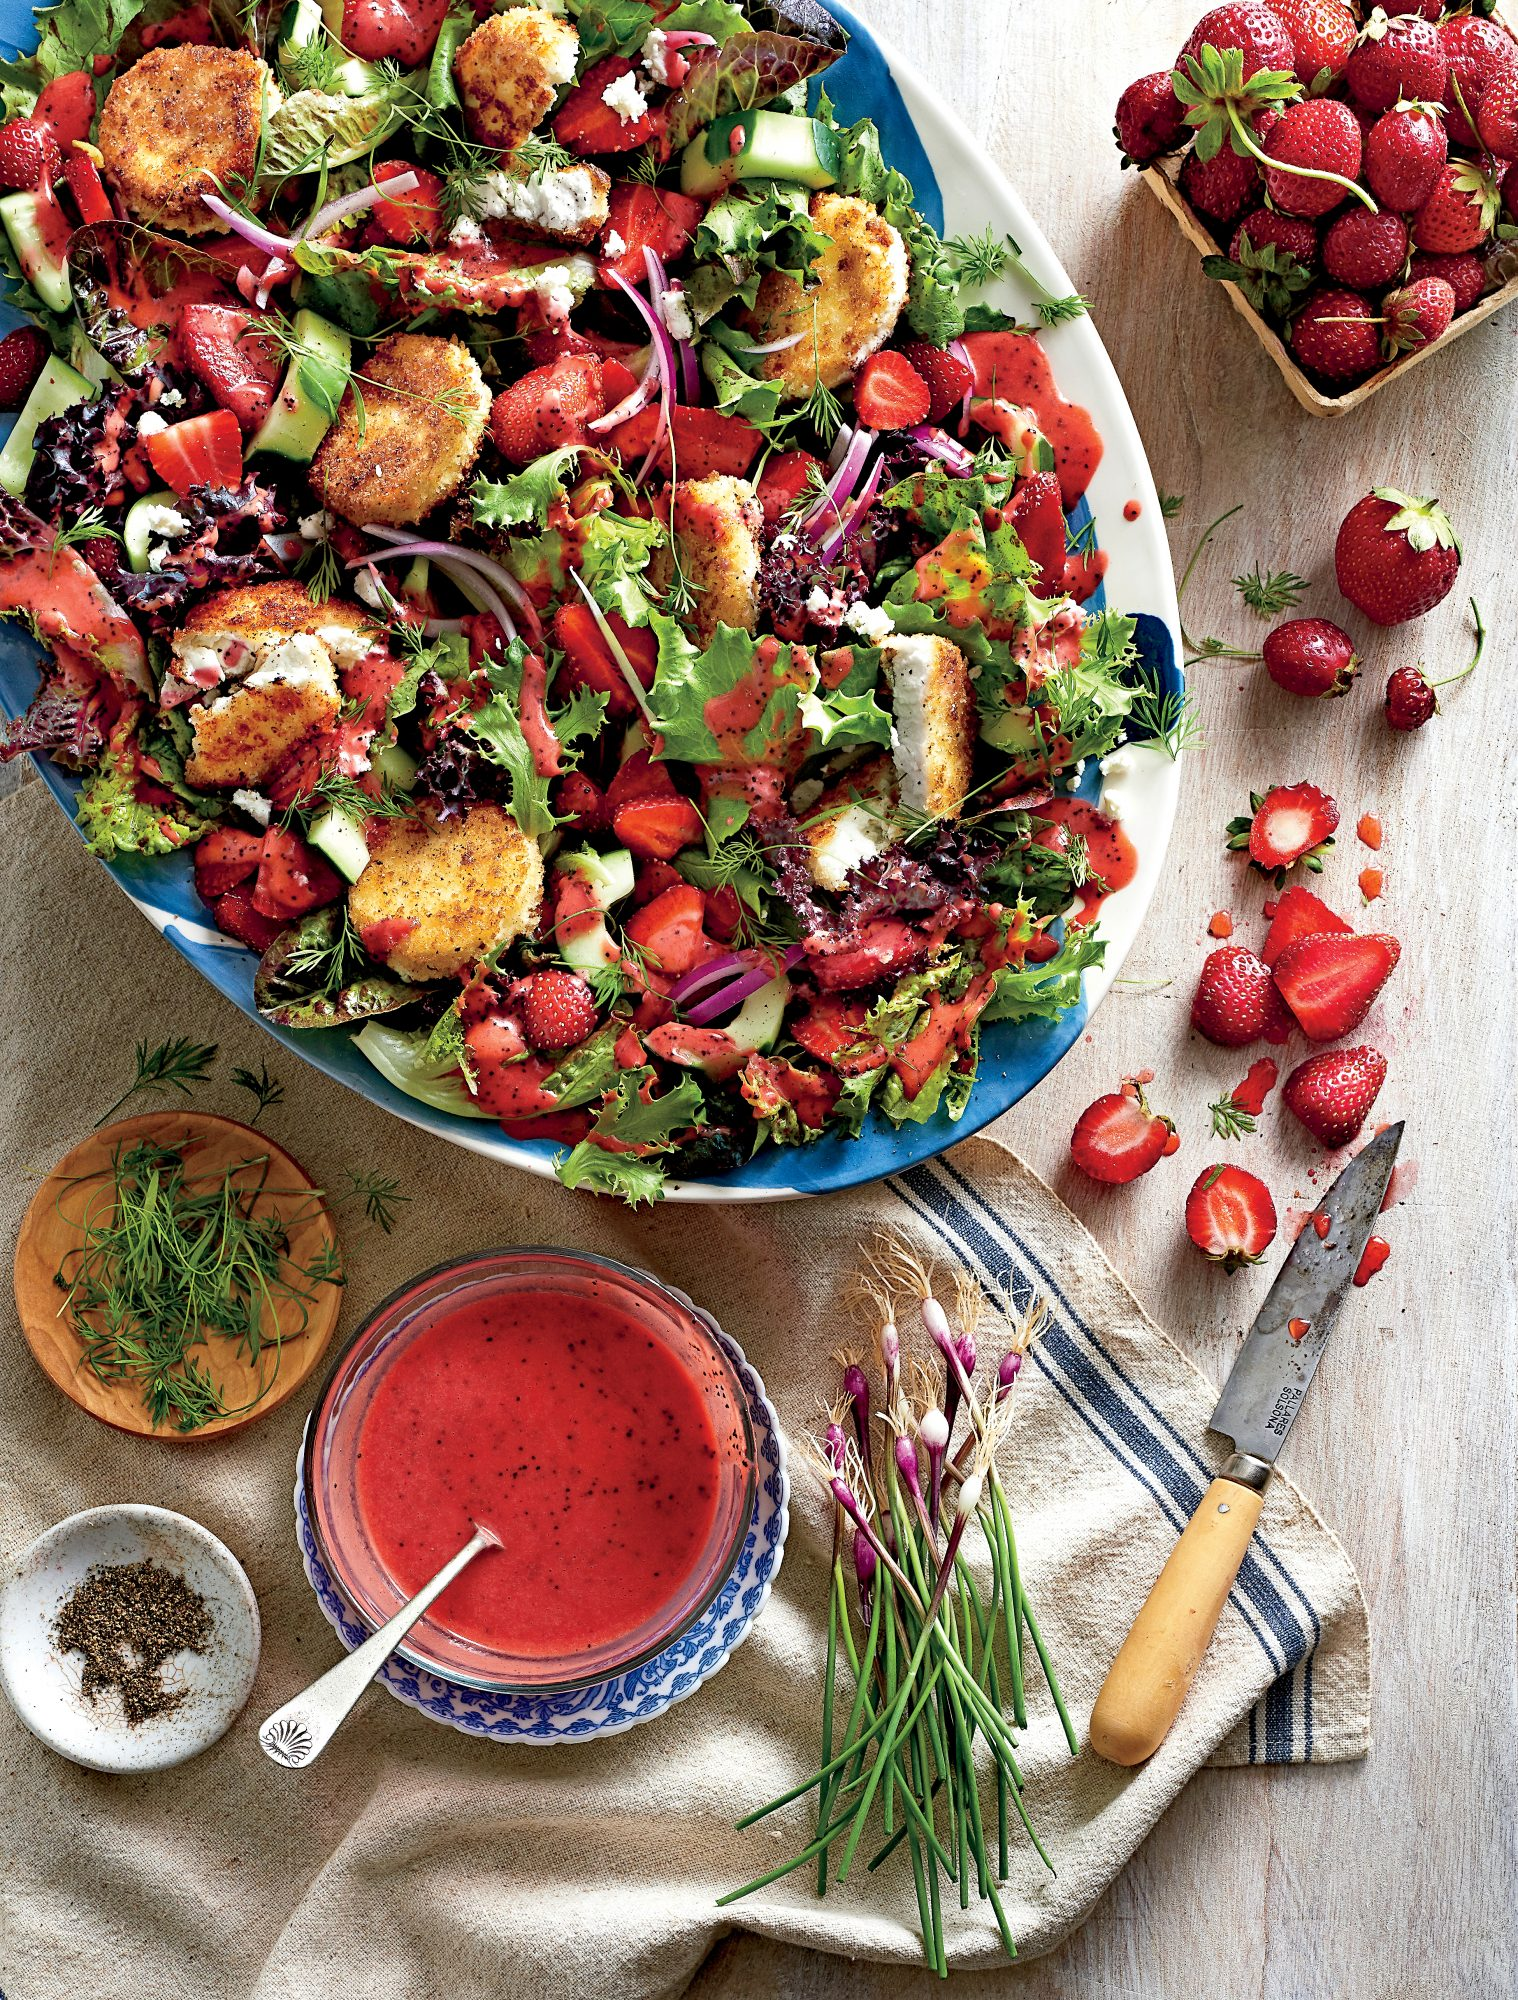 Strawberry-Poppy Seed Vinaigrette